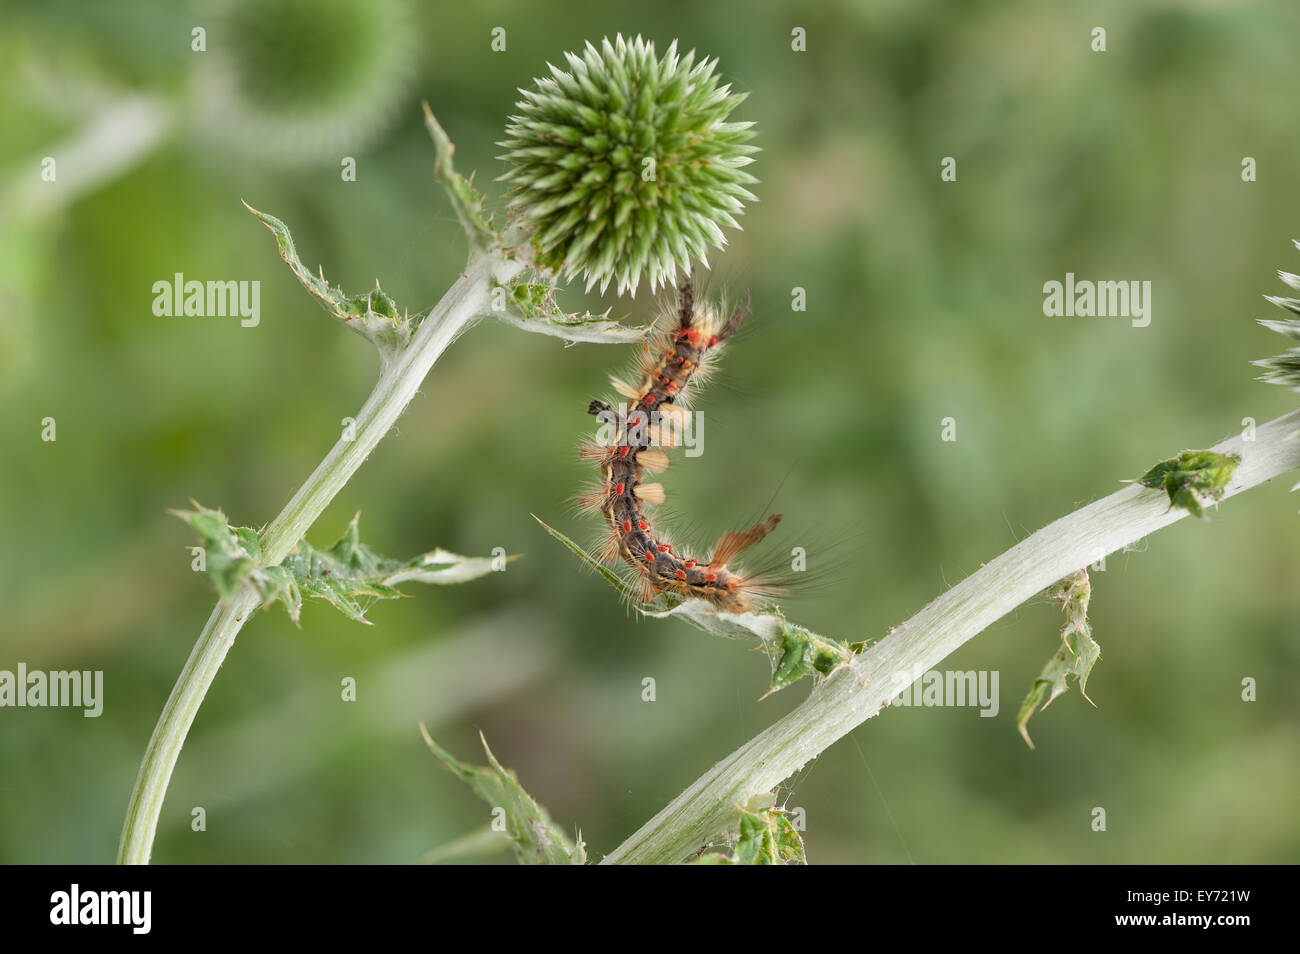 The Rusty Tussock Moth climbing amongst globe thistles it is a very hairy caterpillar and the irritating fine hairs - Stock Image